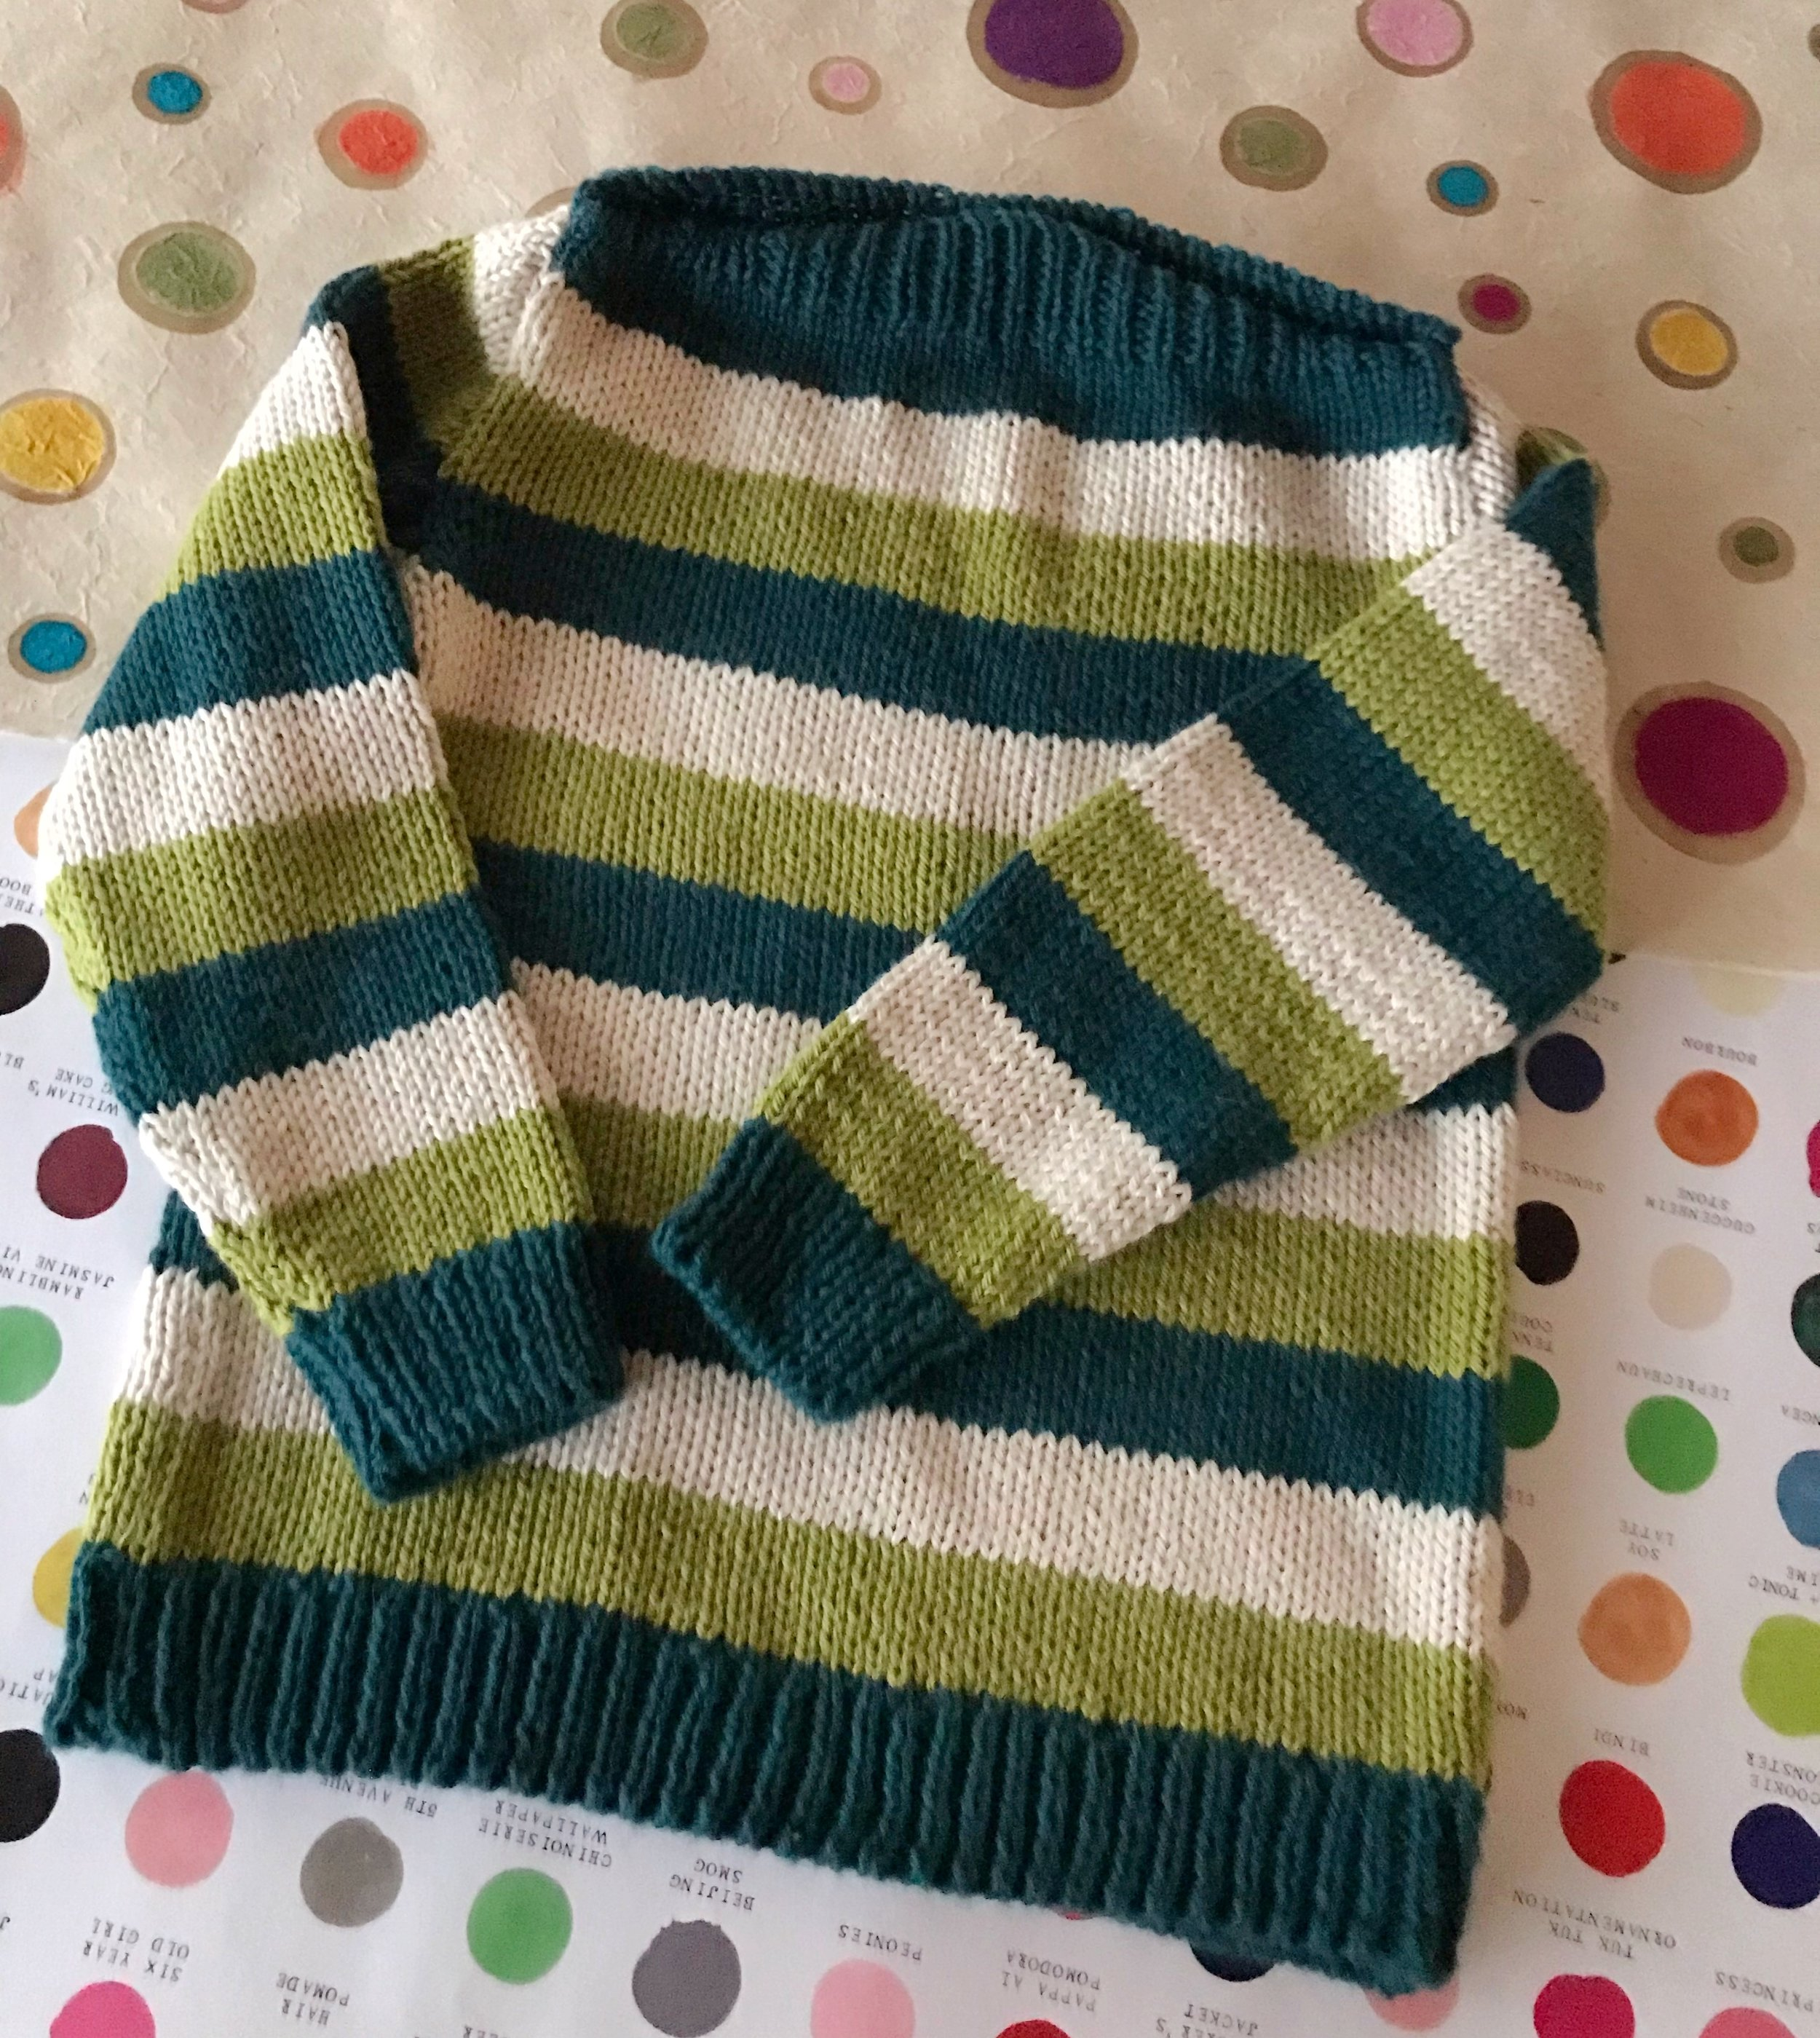 East Fork Pullover - Not only are wide stripes on kids' sweaters cute, they work up fast! The East Folk Pullover is worked in pieces and seamed, but the stripes make it easy to match up. The boat neck is wide, making it easy to put on and take off, and the buttons at the shoulders add a little personality.